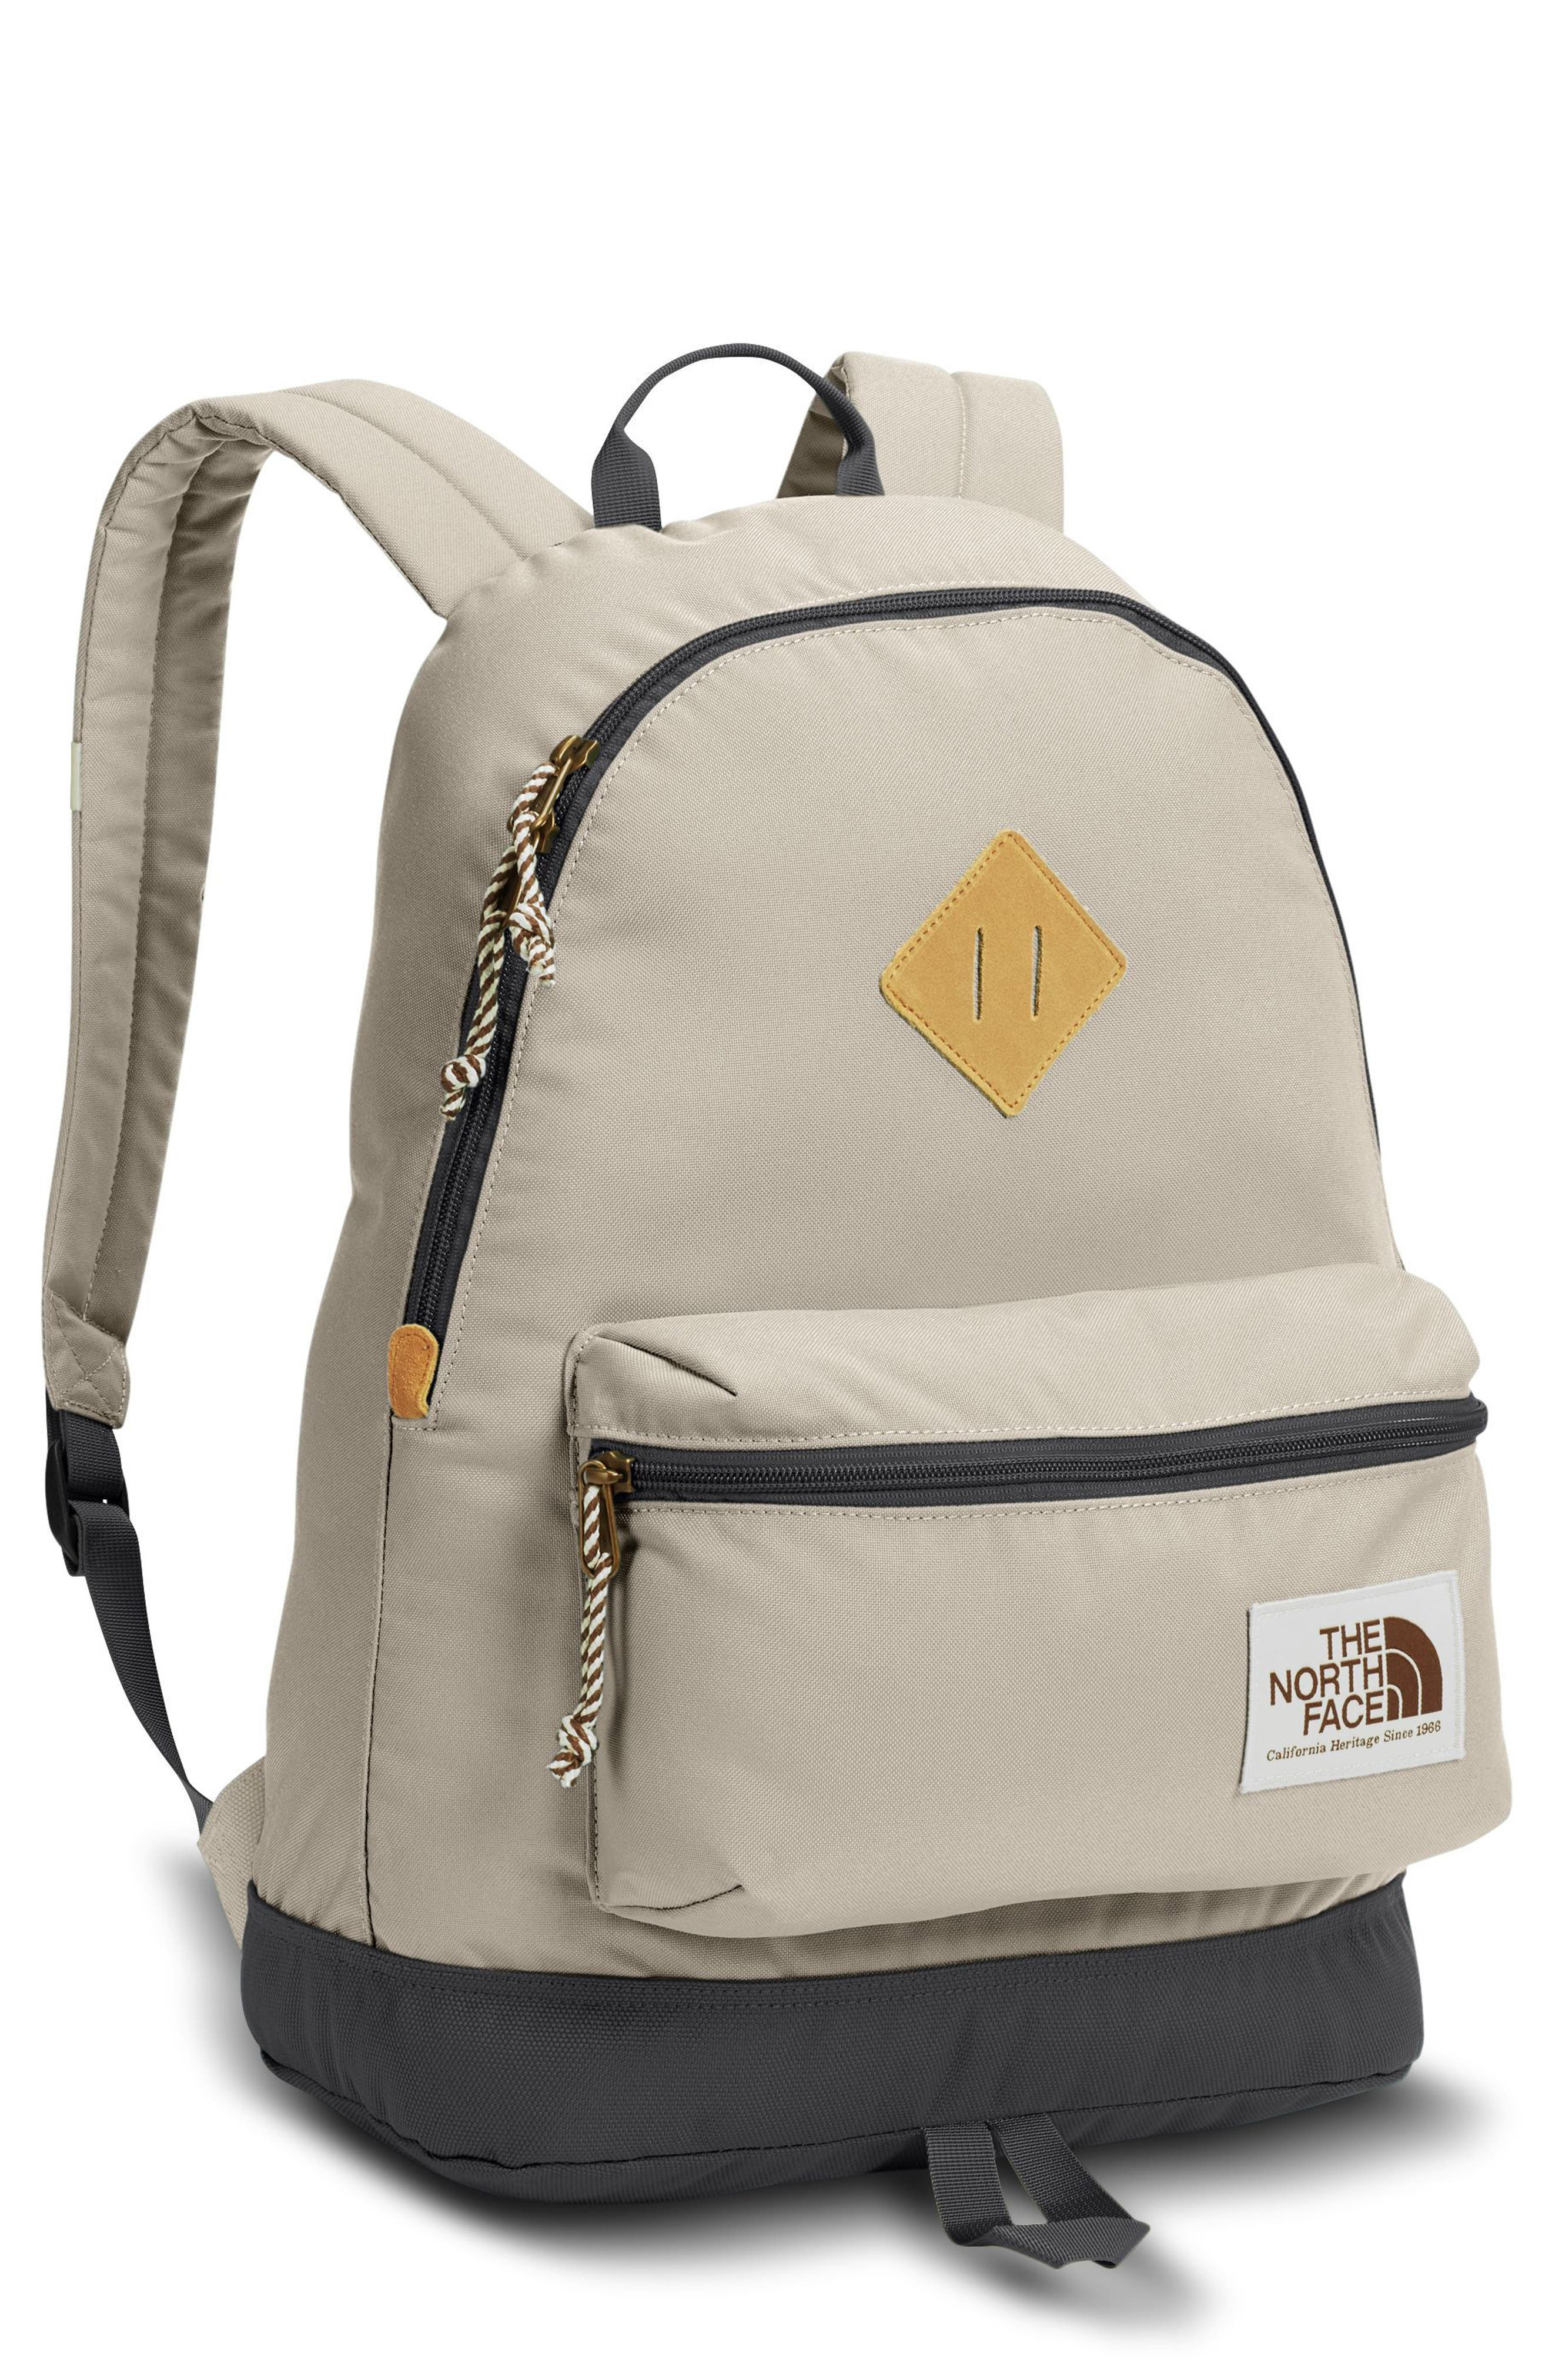 The North Face Berkeley Backpack